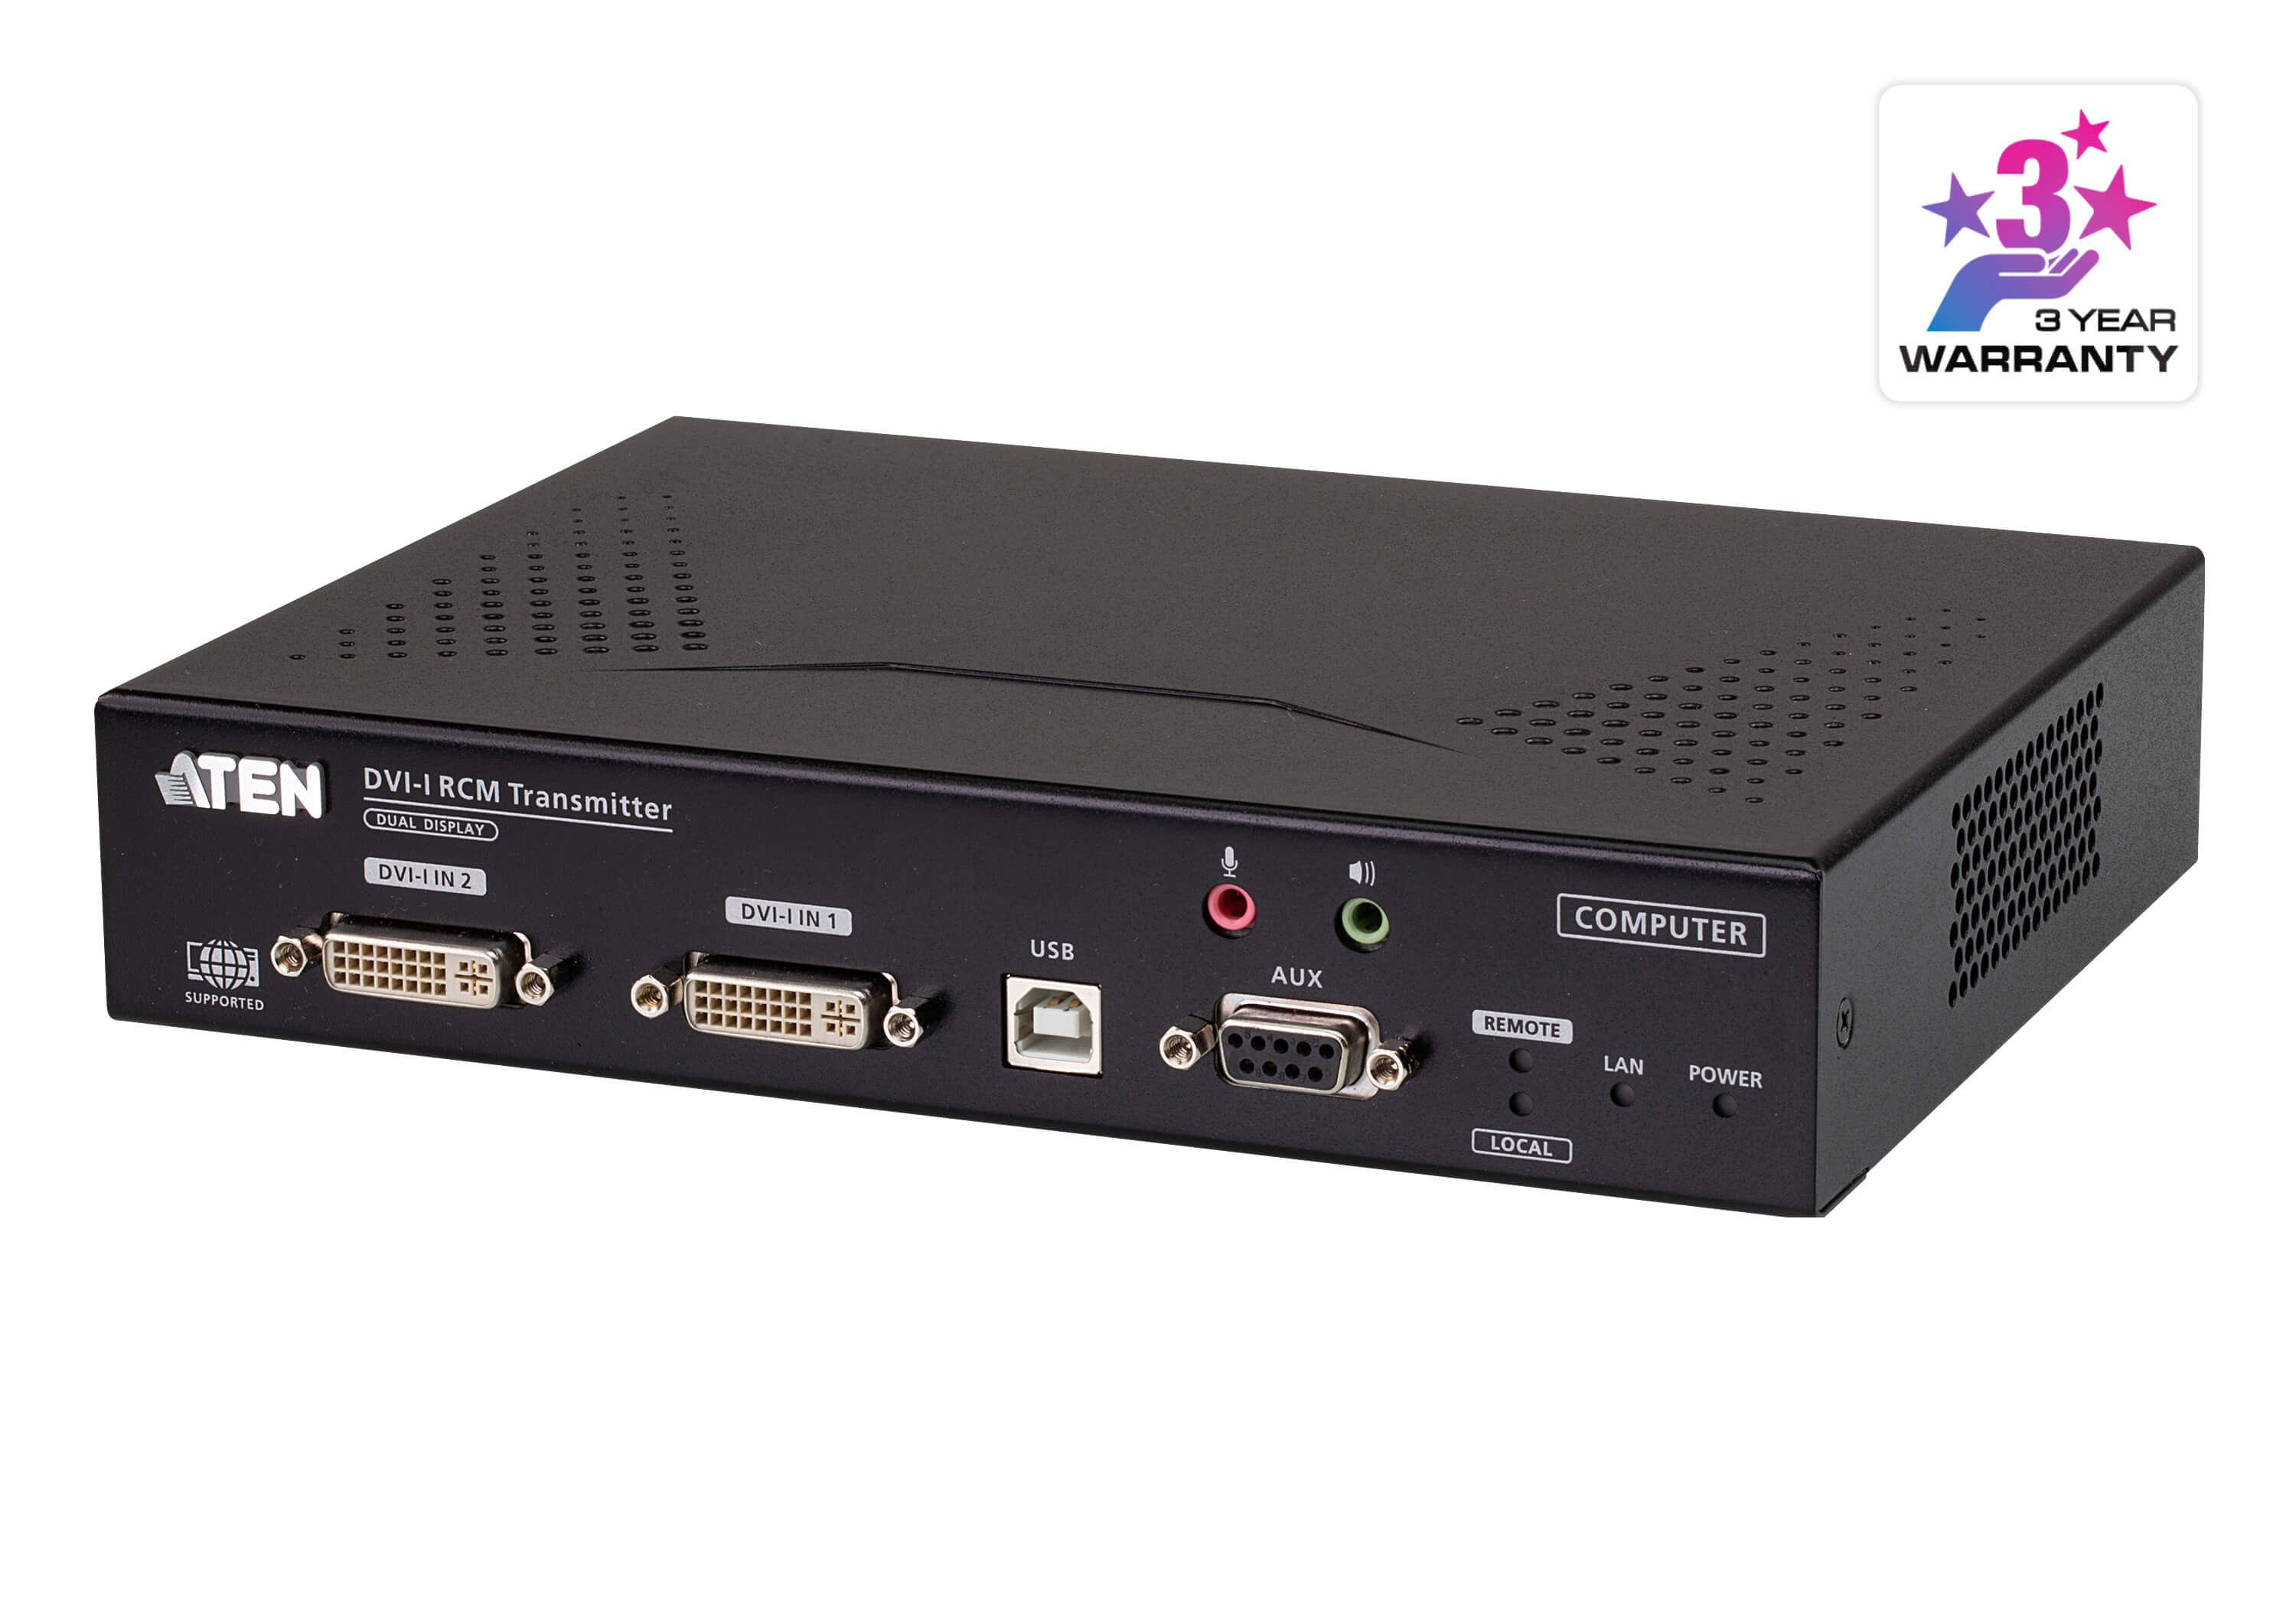 DVI-I Dual Display KVM over IP Transmitter with Remote Access-2